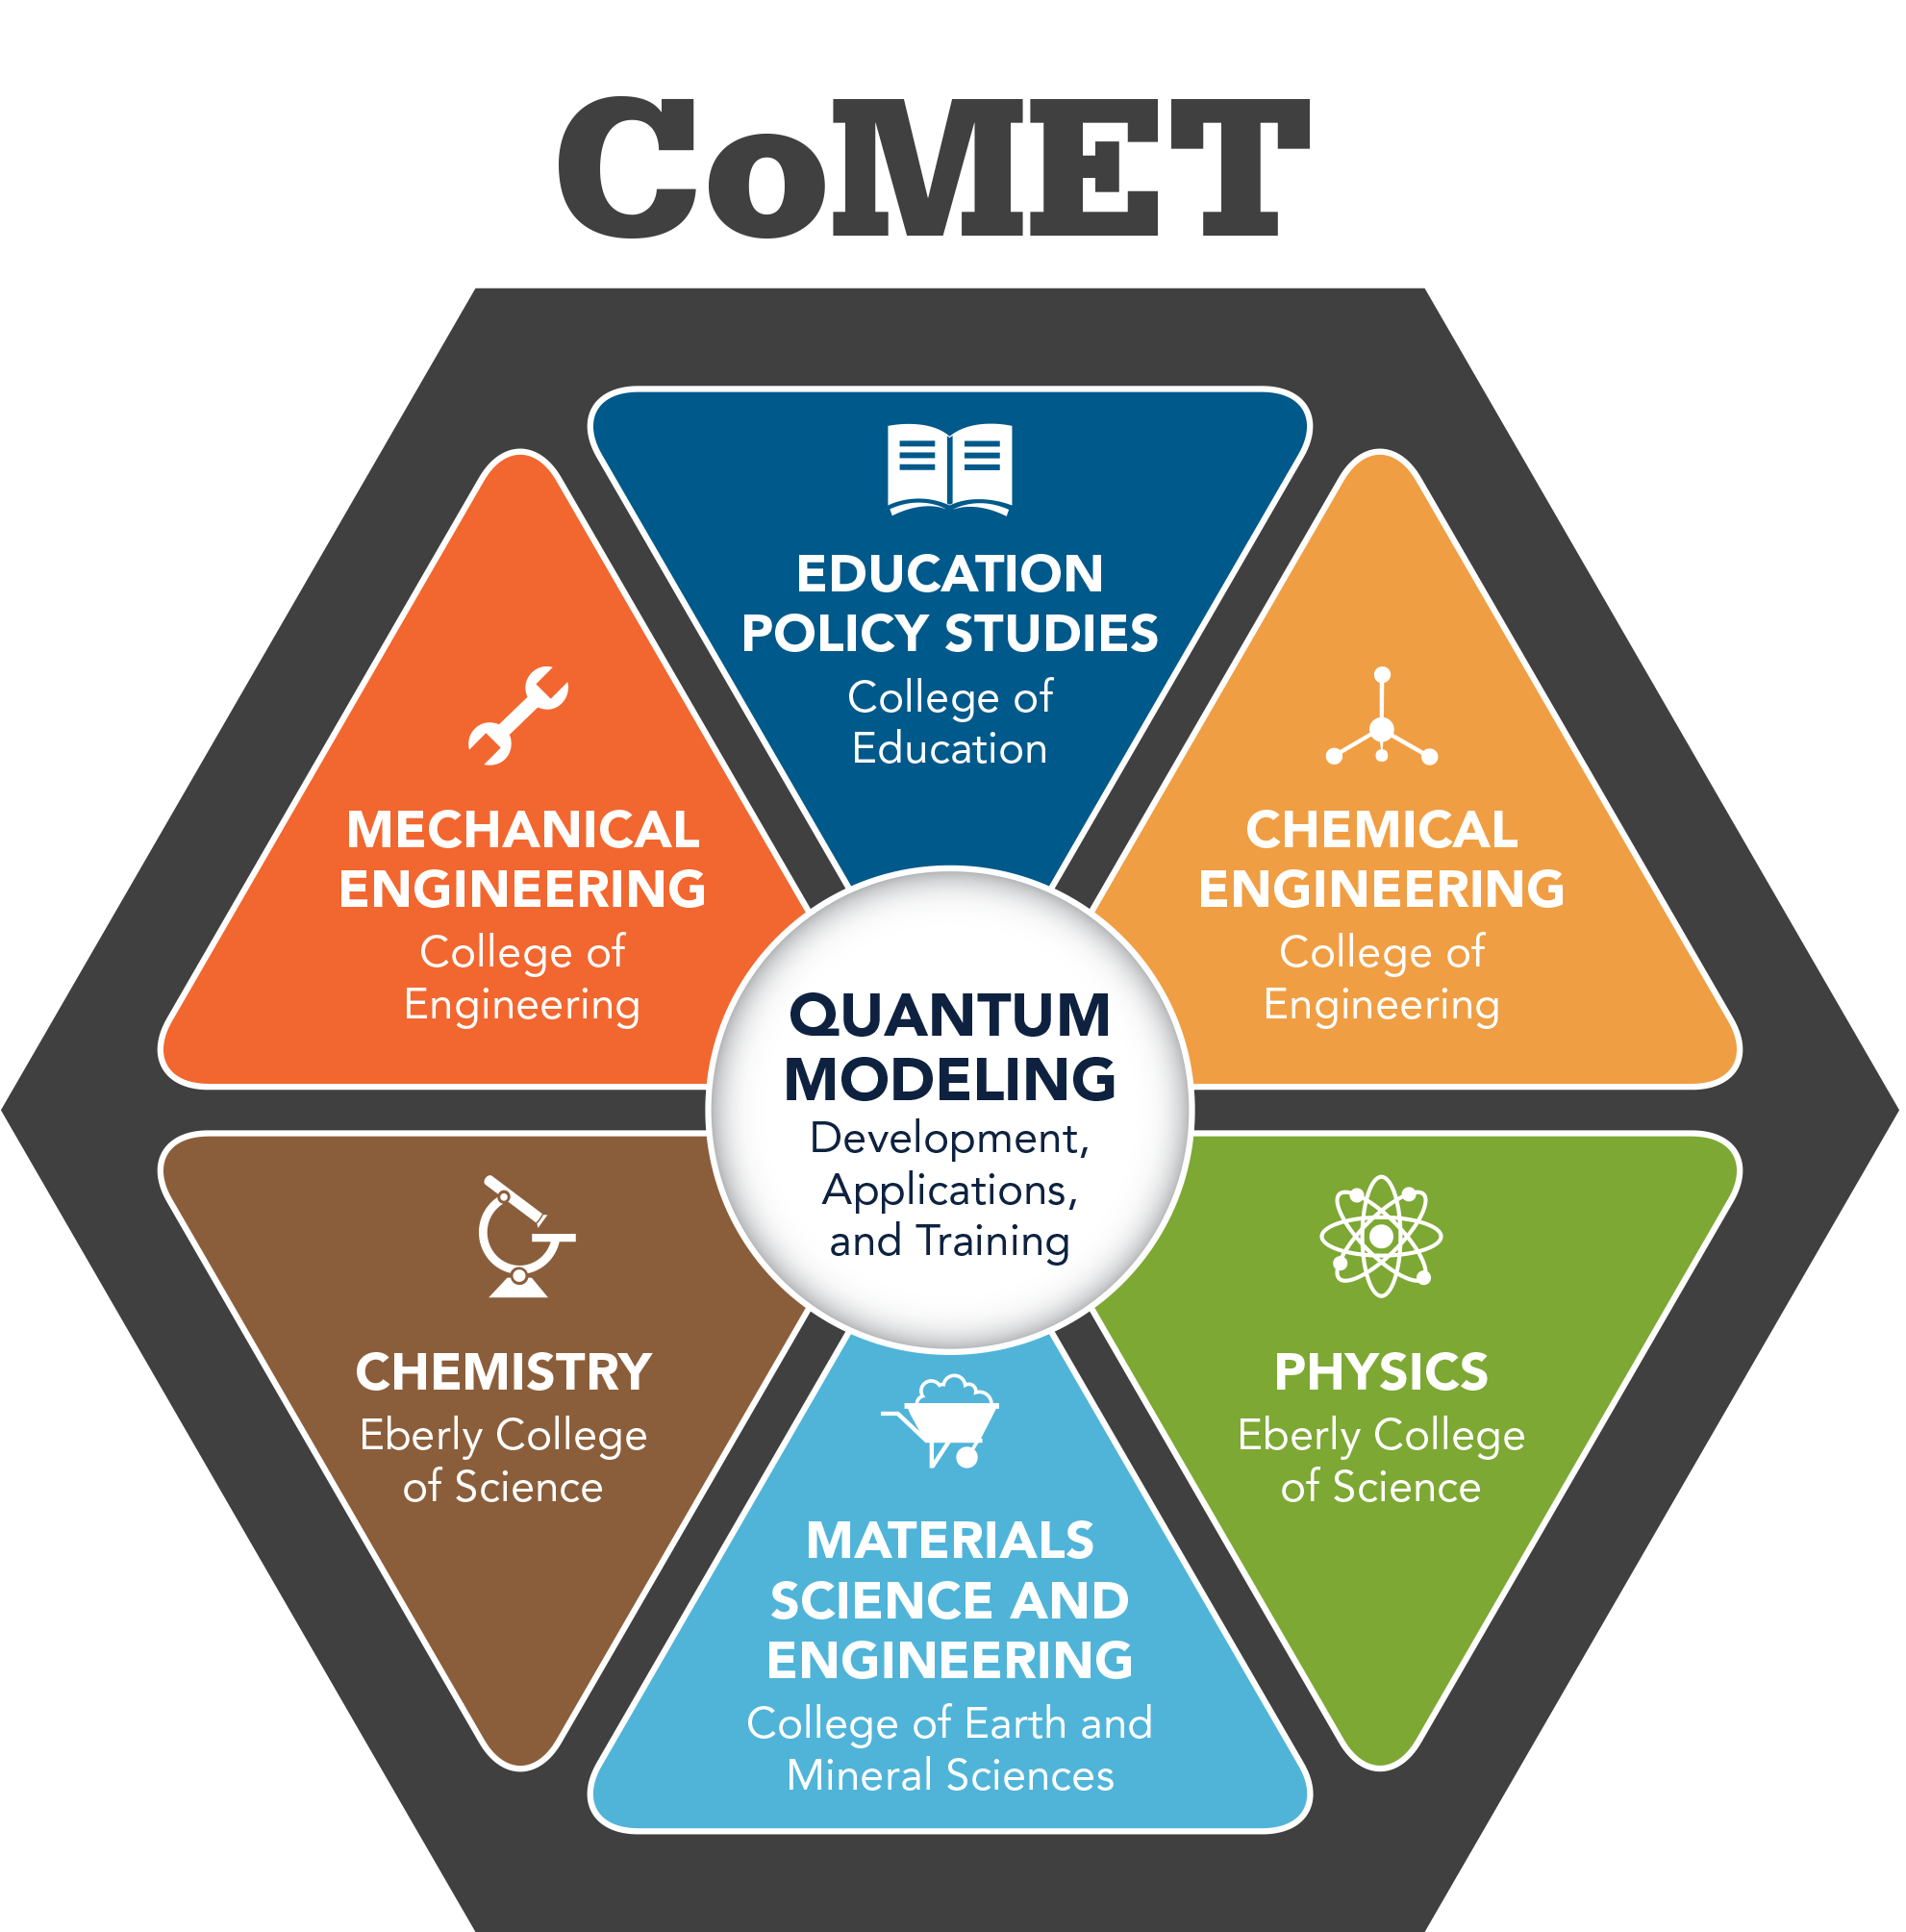 CoMET embraces students from a wide variety of STEM disciplines